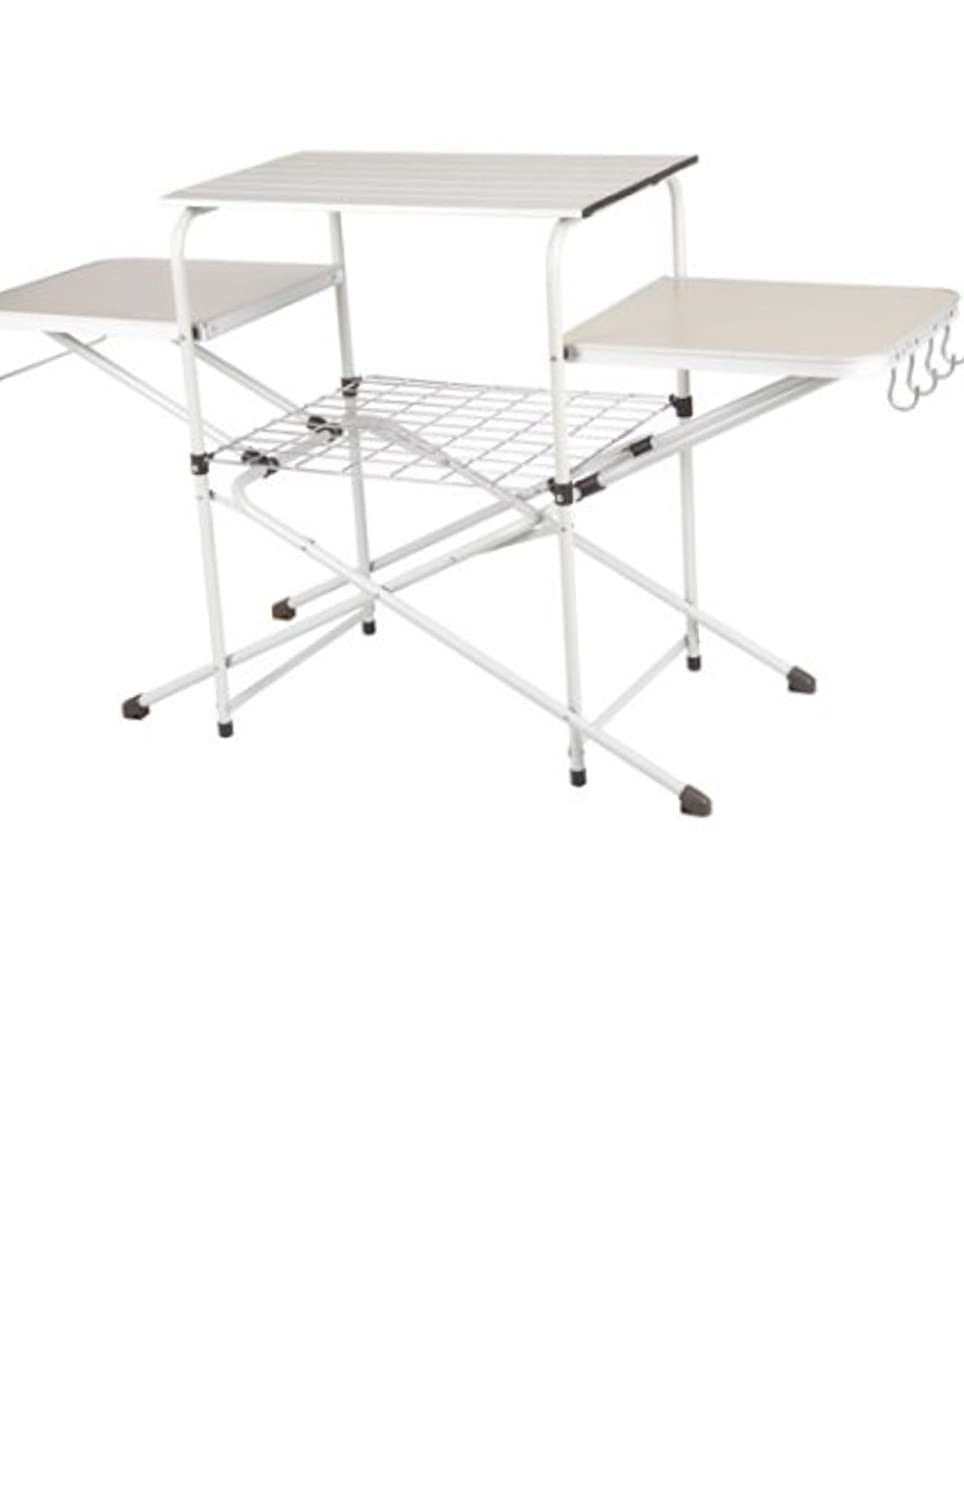 Amazon.com : Camping Outdoor Use Kitchen Cooking Stand, White ...